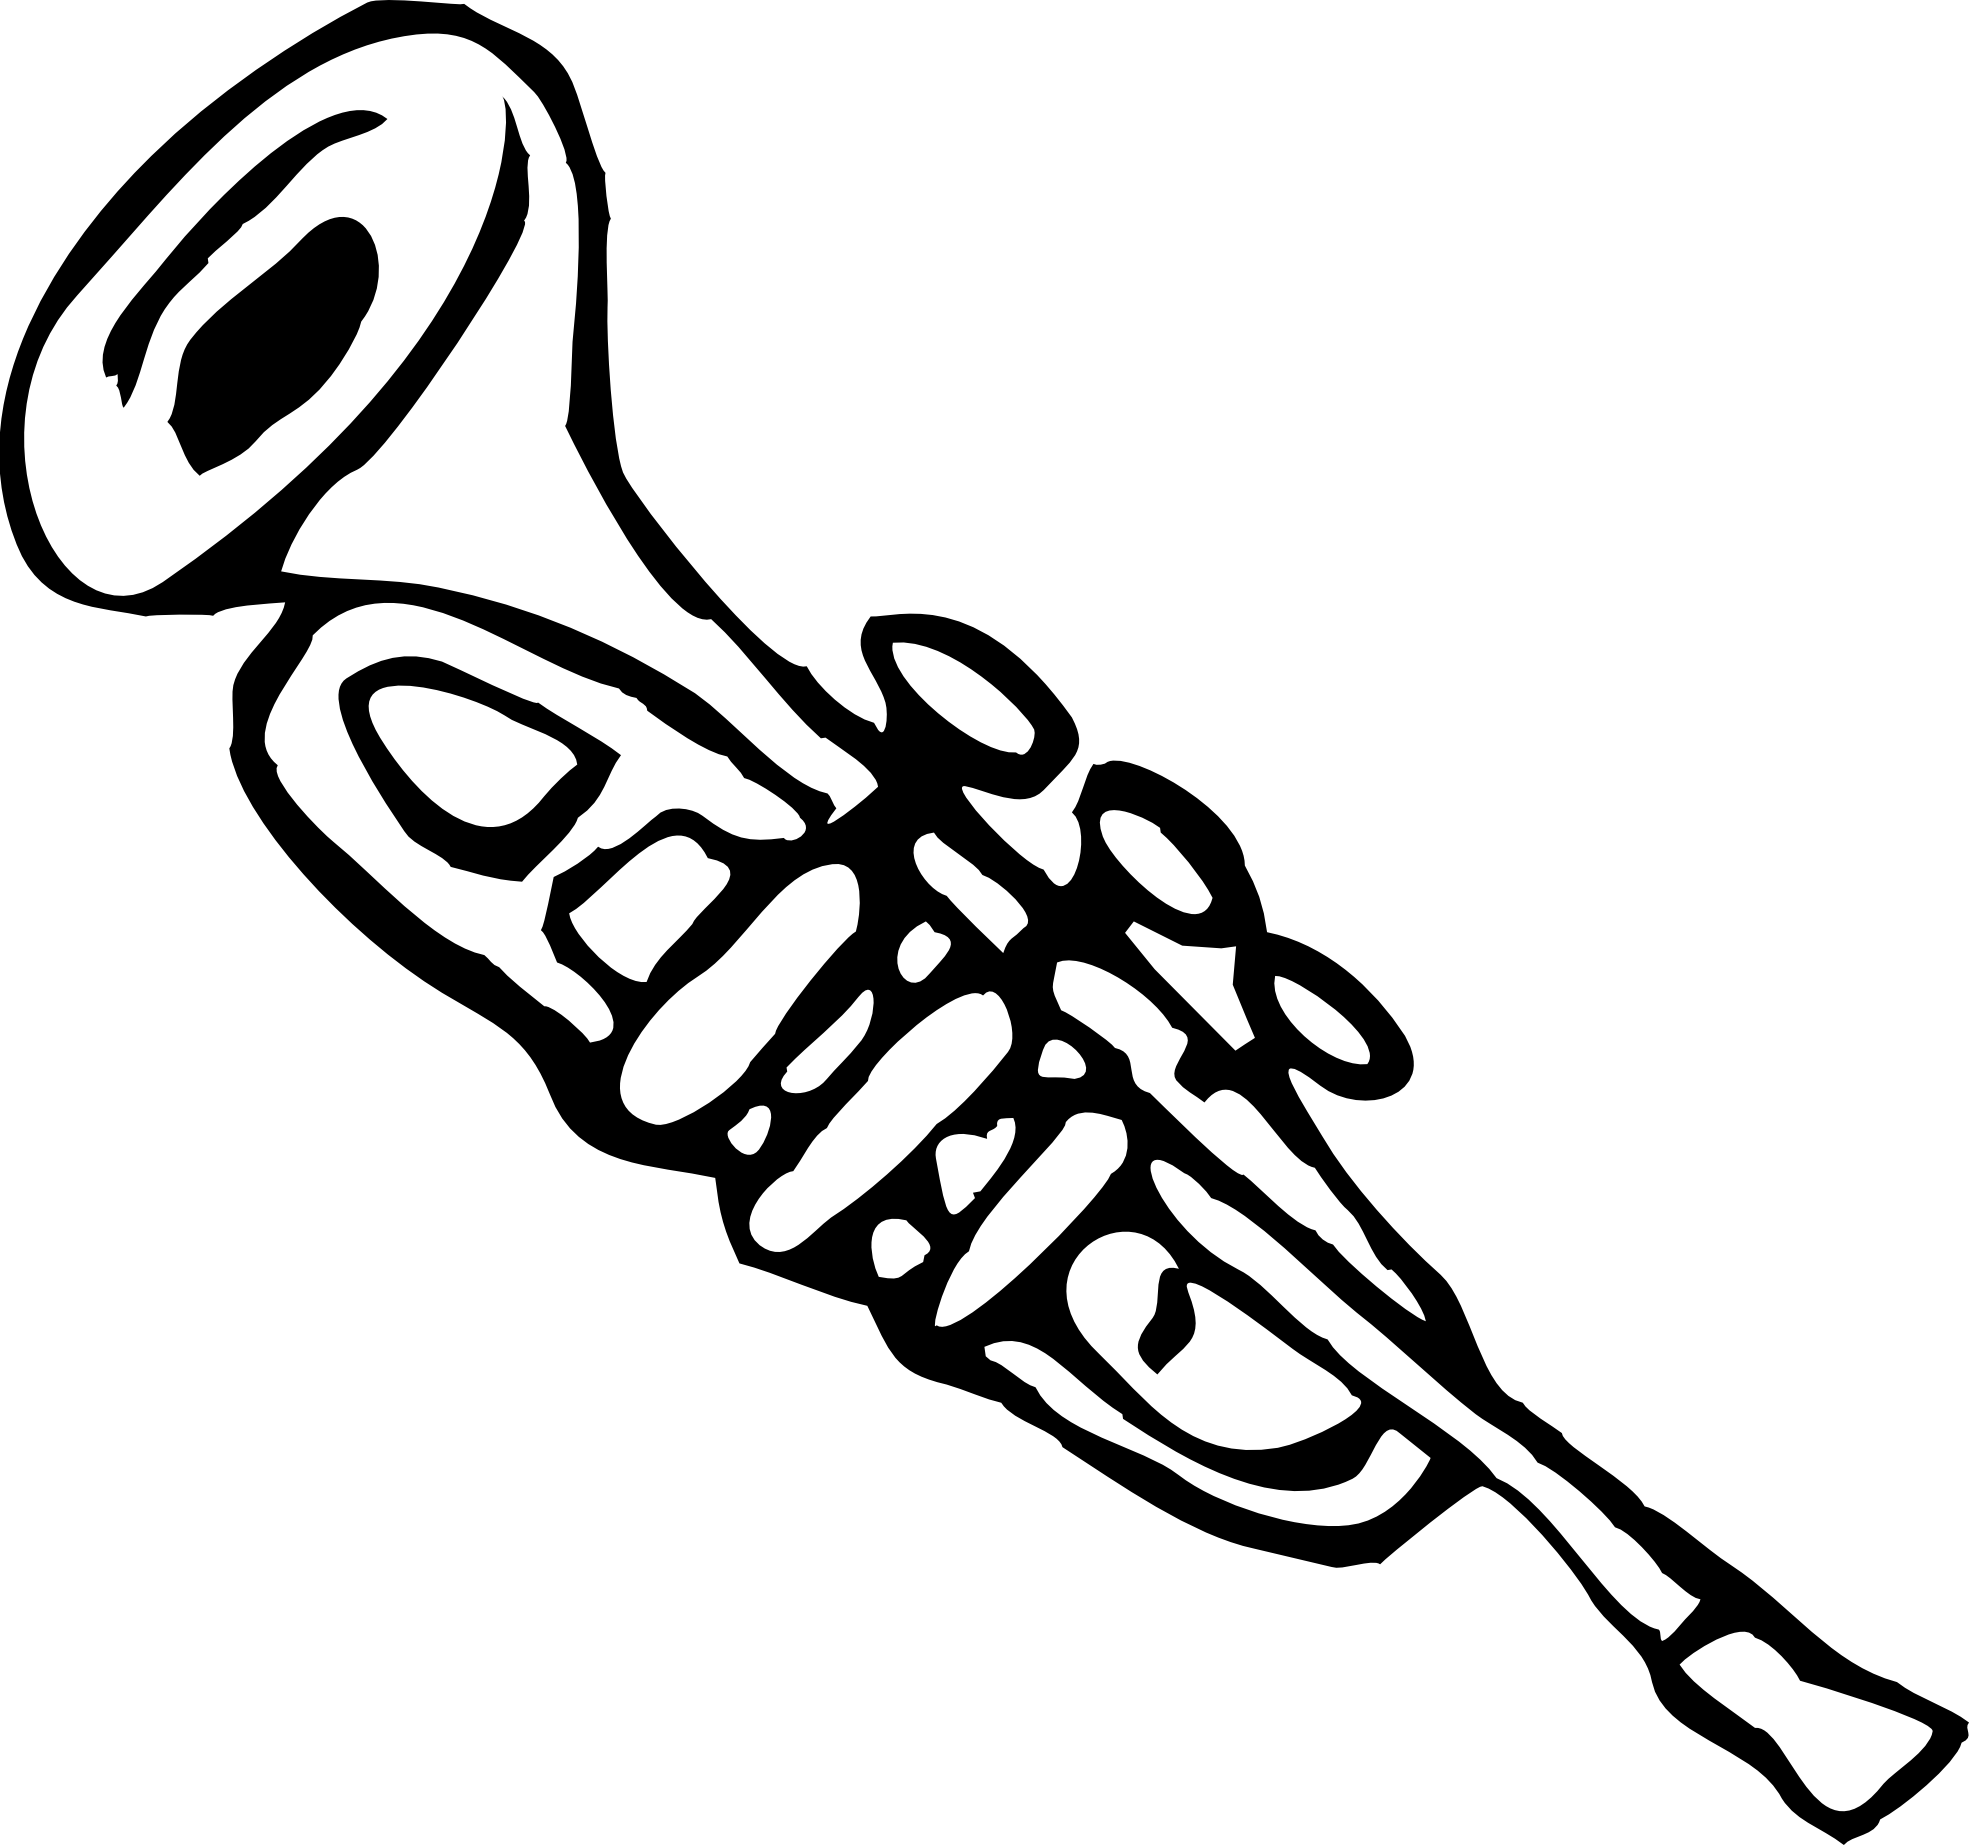 Horn clipart black and white.